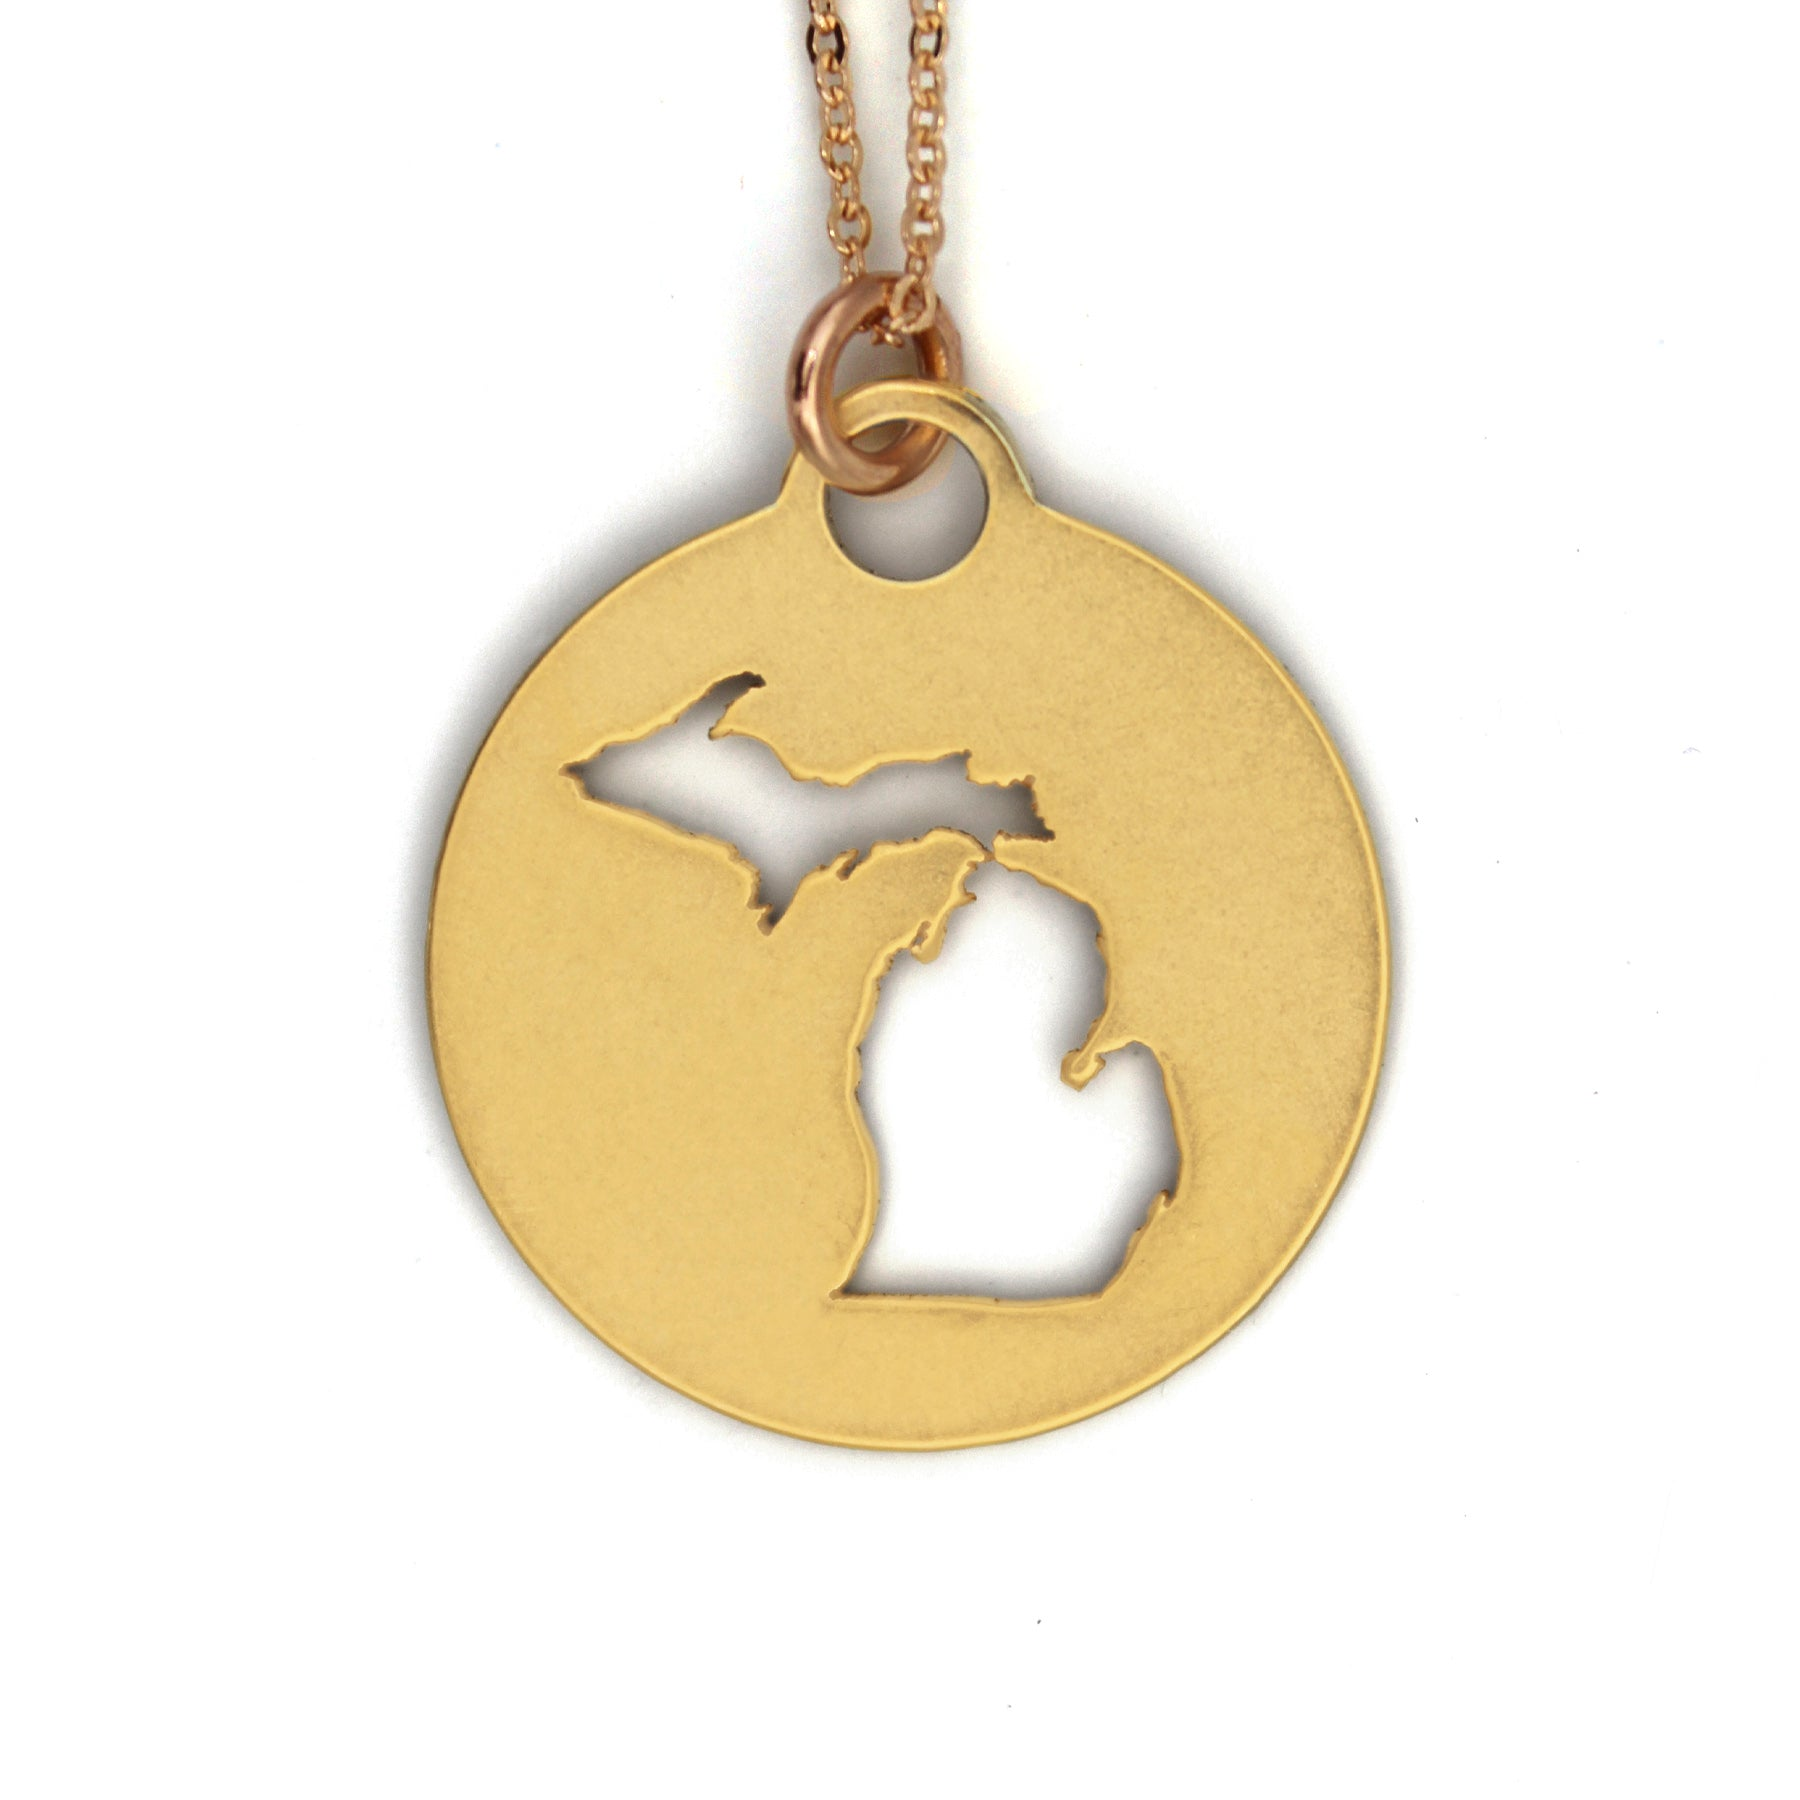 Round Gold Michigan Pendant Necklace